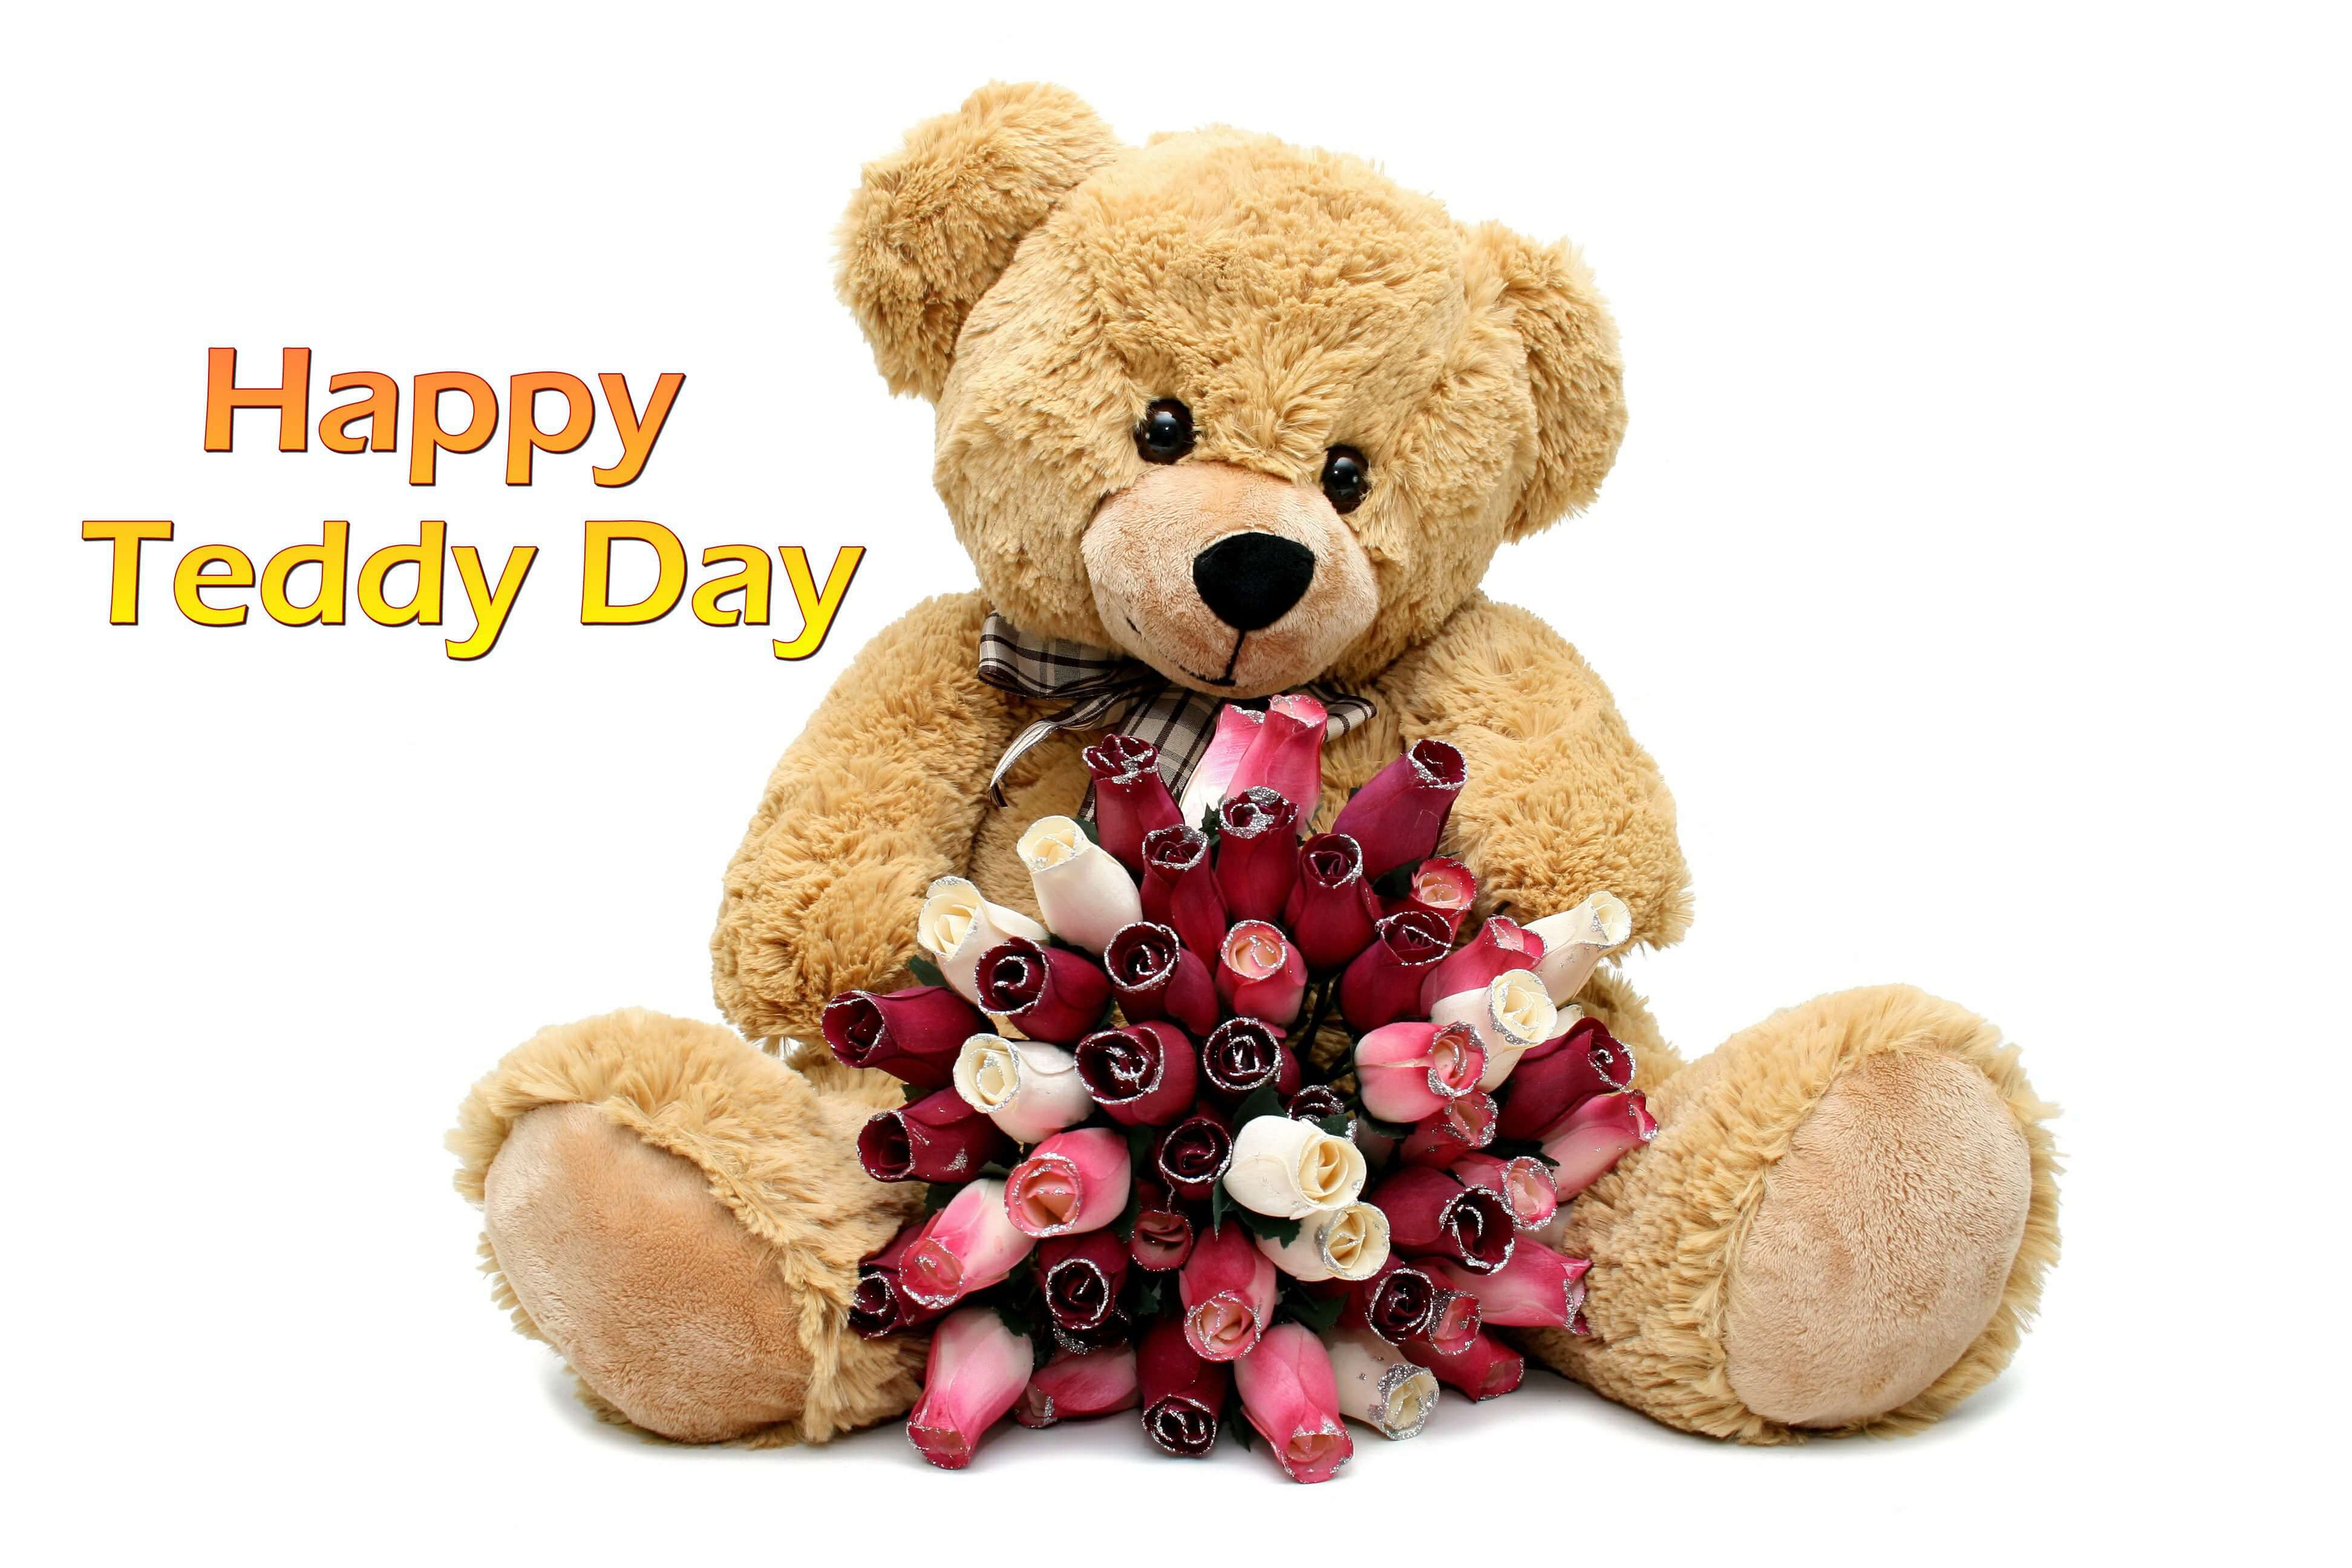 happy teddy day wishes bear graphic image february 10th large hd wallpaper